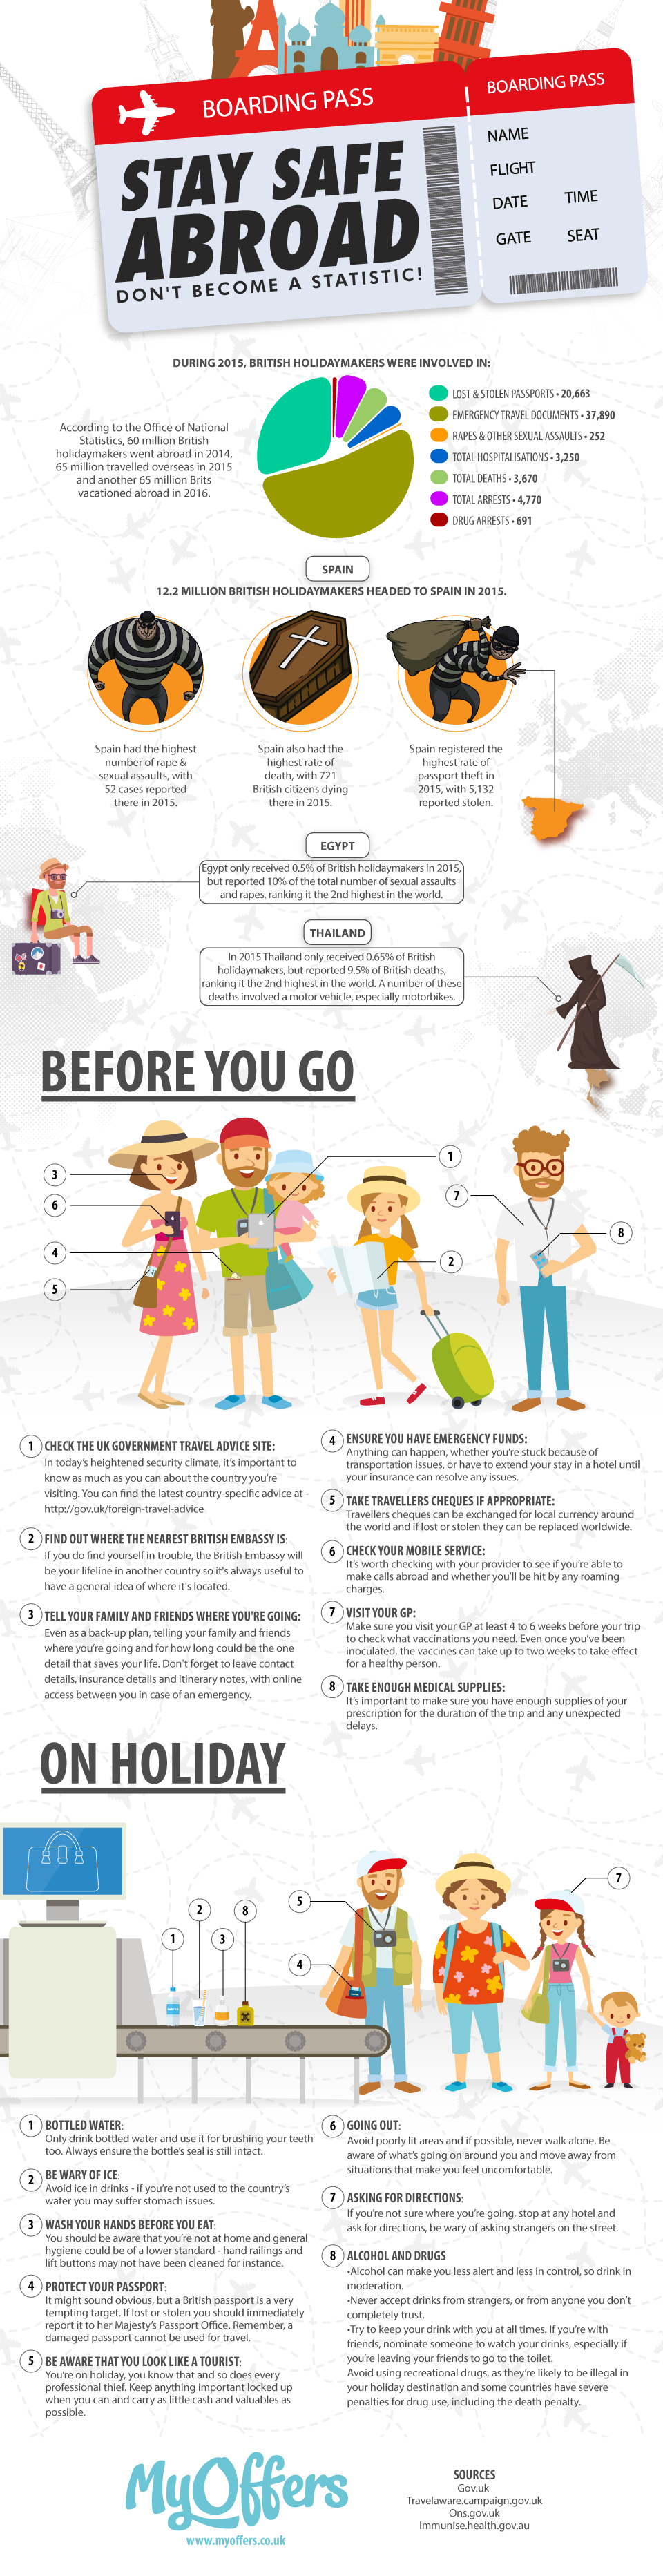 Staying Safe Abroad Don T Become A Statistic Infographic Travel